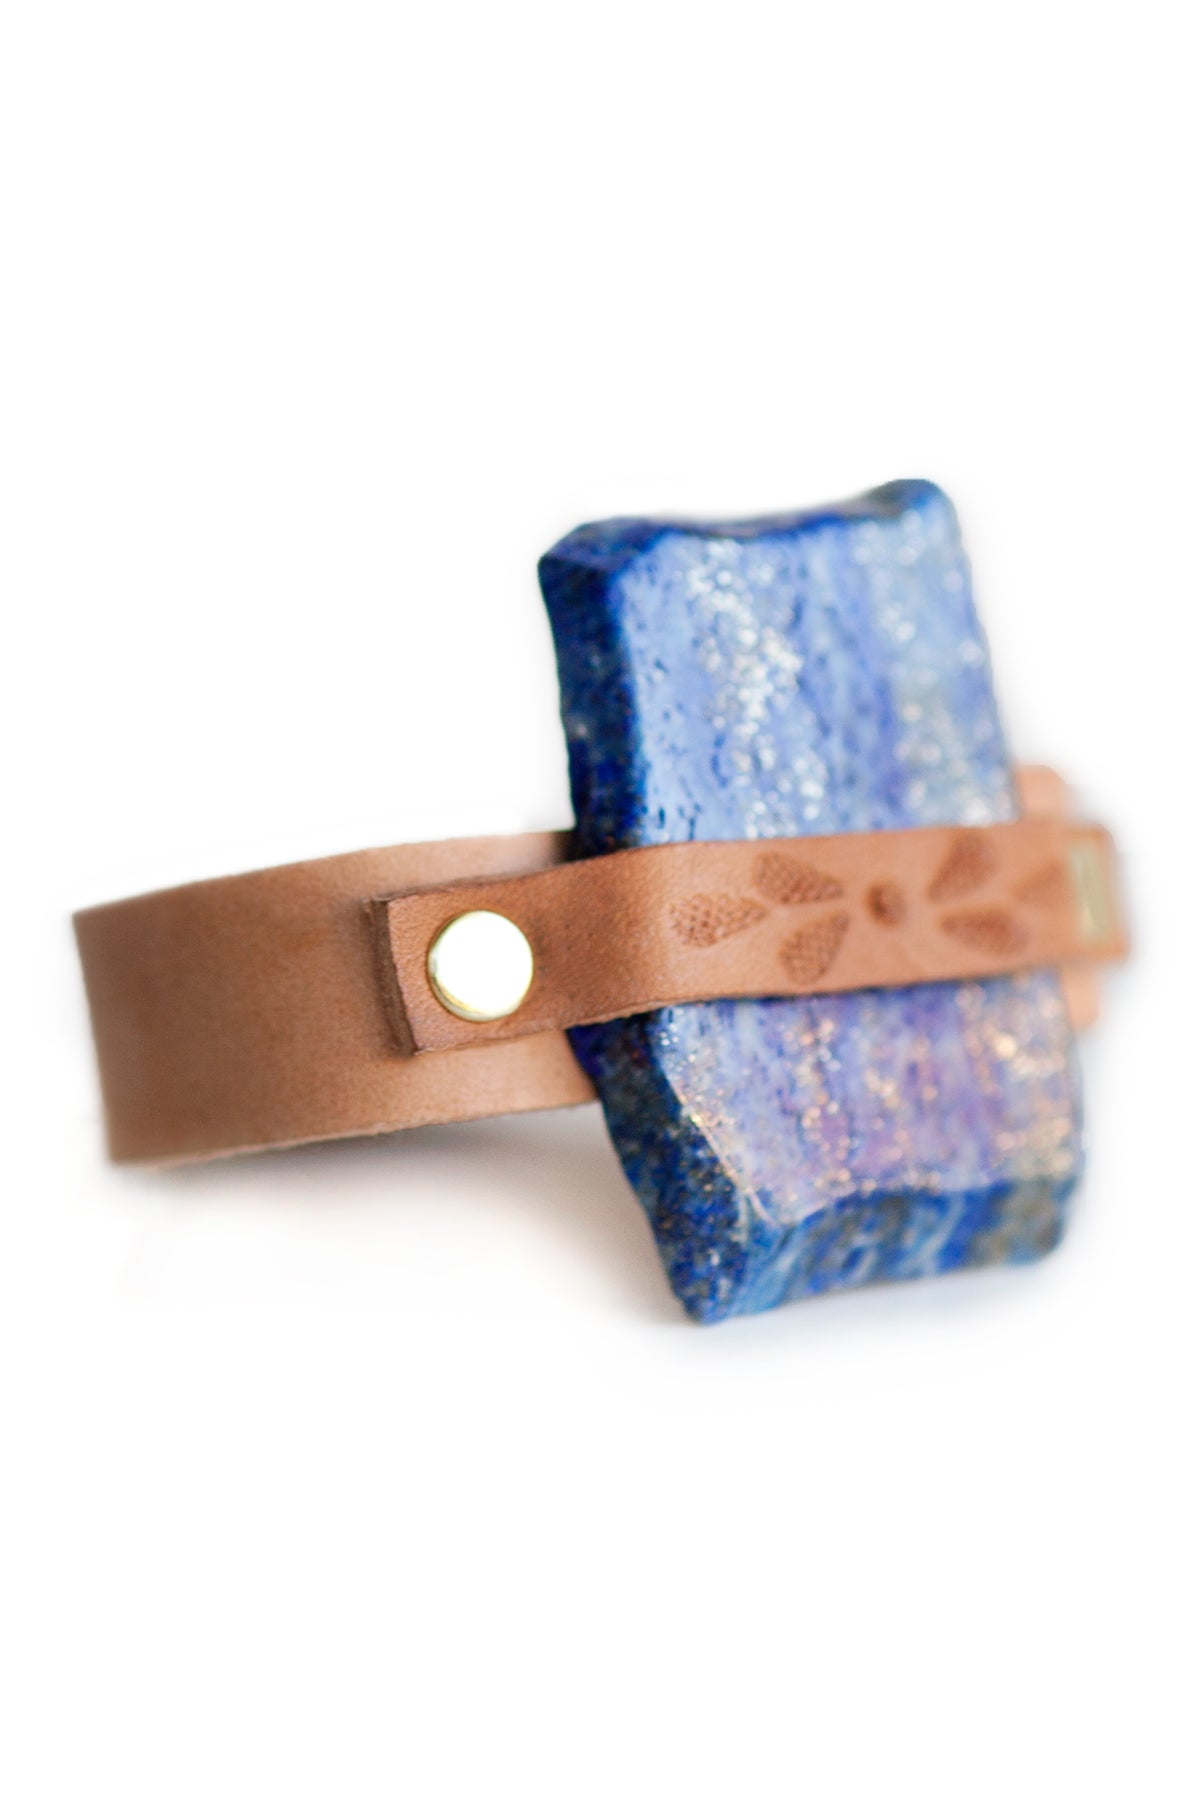 SUMMIT BLUE LAPIZ CUFF